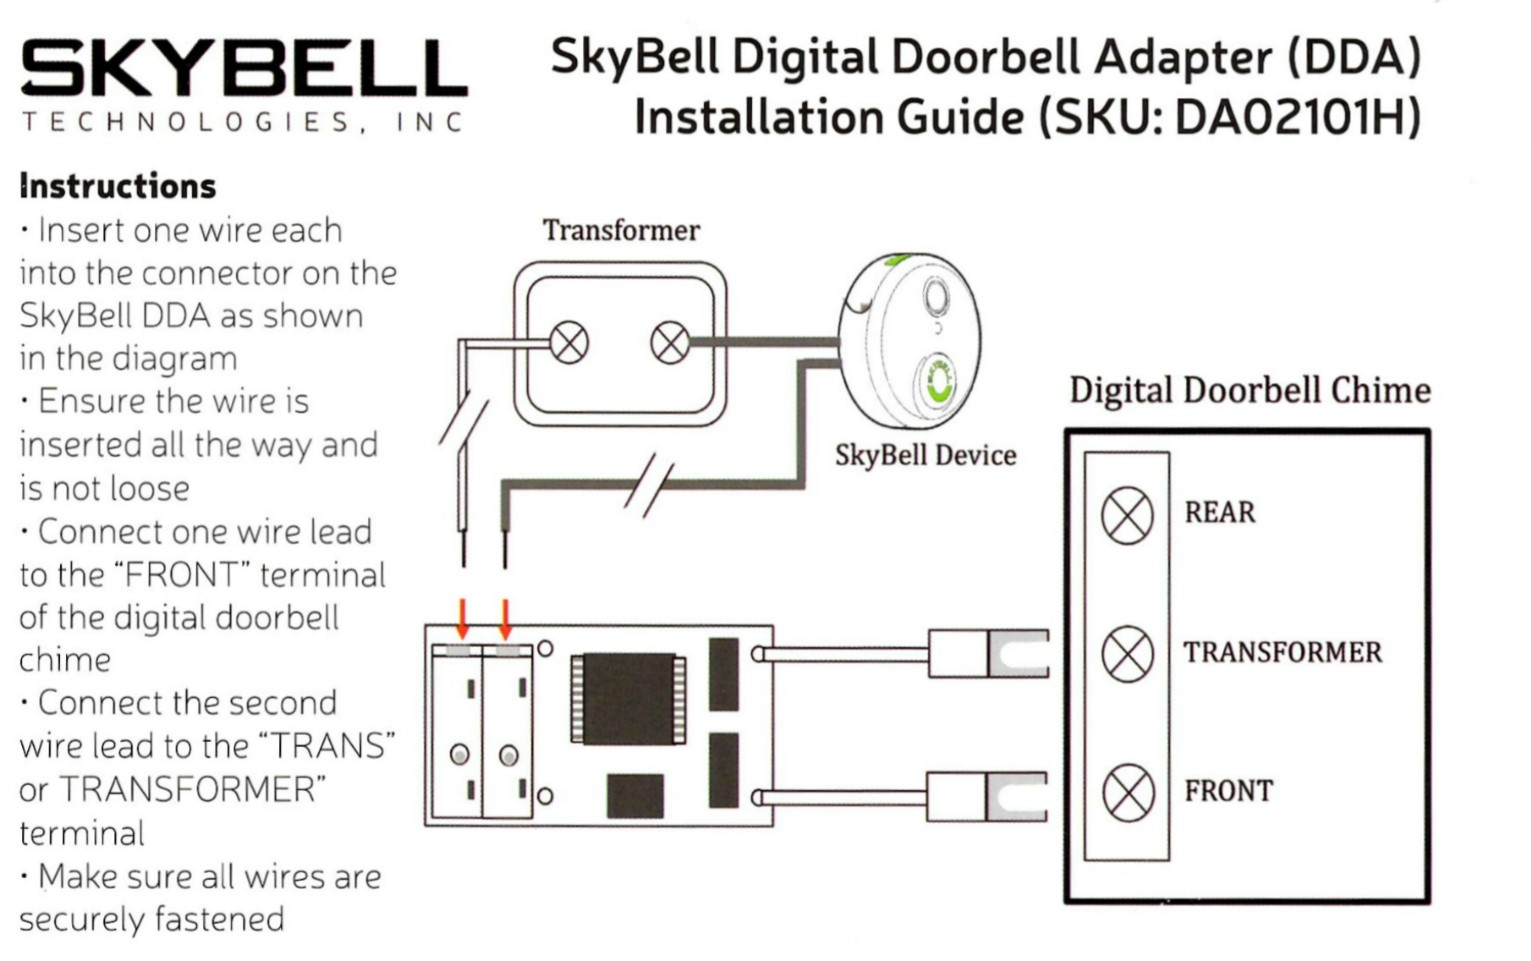 Do I Need A Digital Doorbell Adapter How Install It Skybell Phone Wiring Diagram Dda Instructions Installation Video